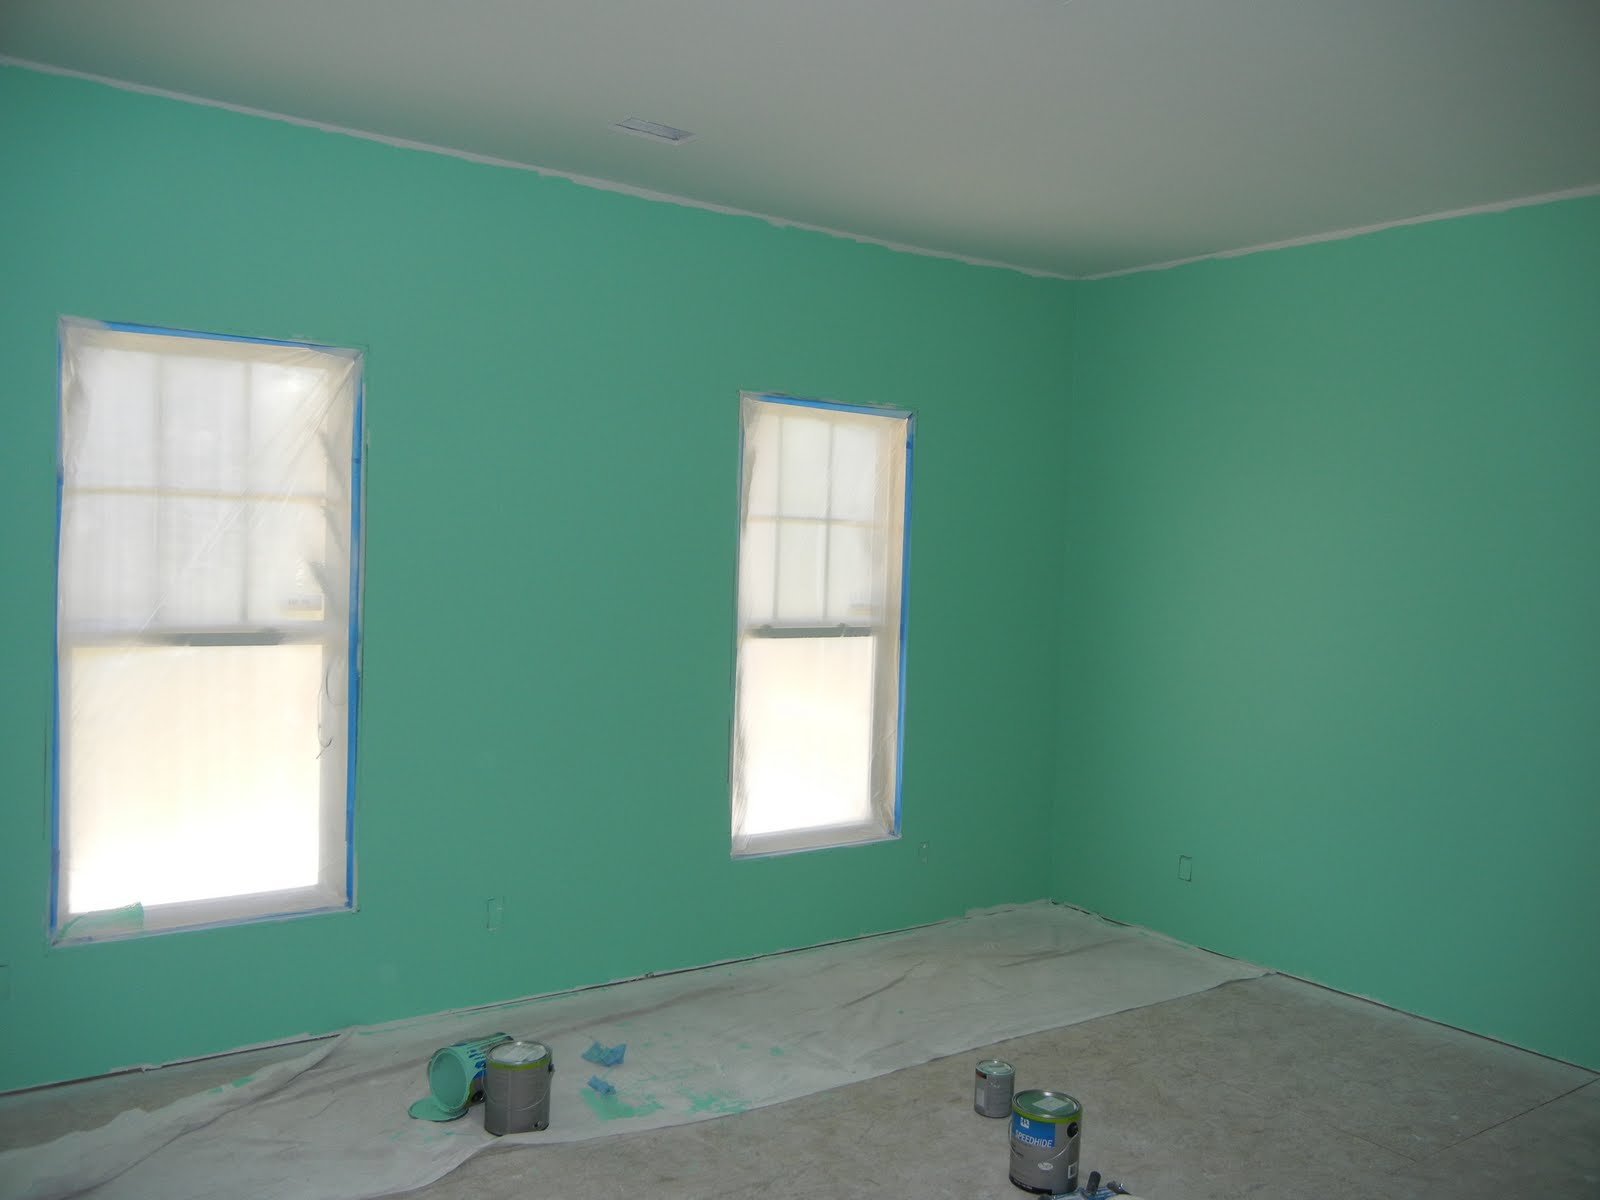 Colored Rooms Prepossessing With Room Colors Image